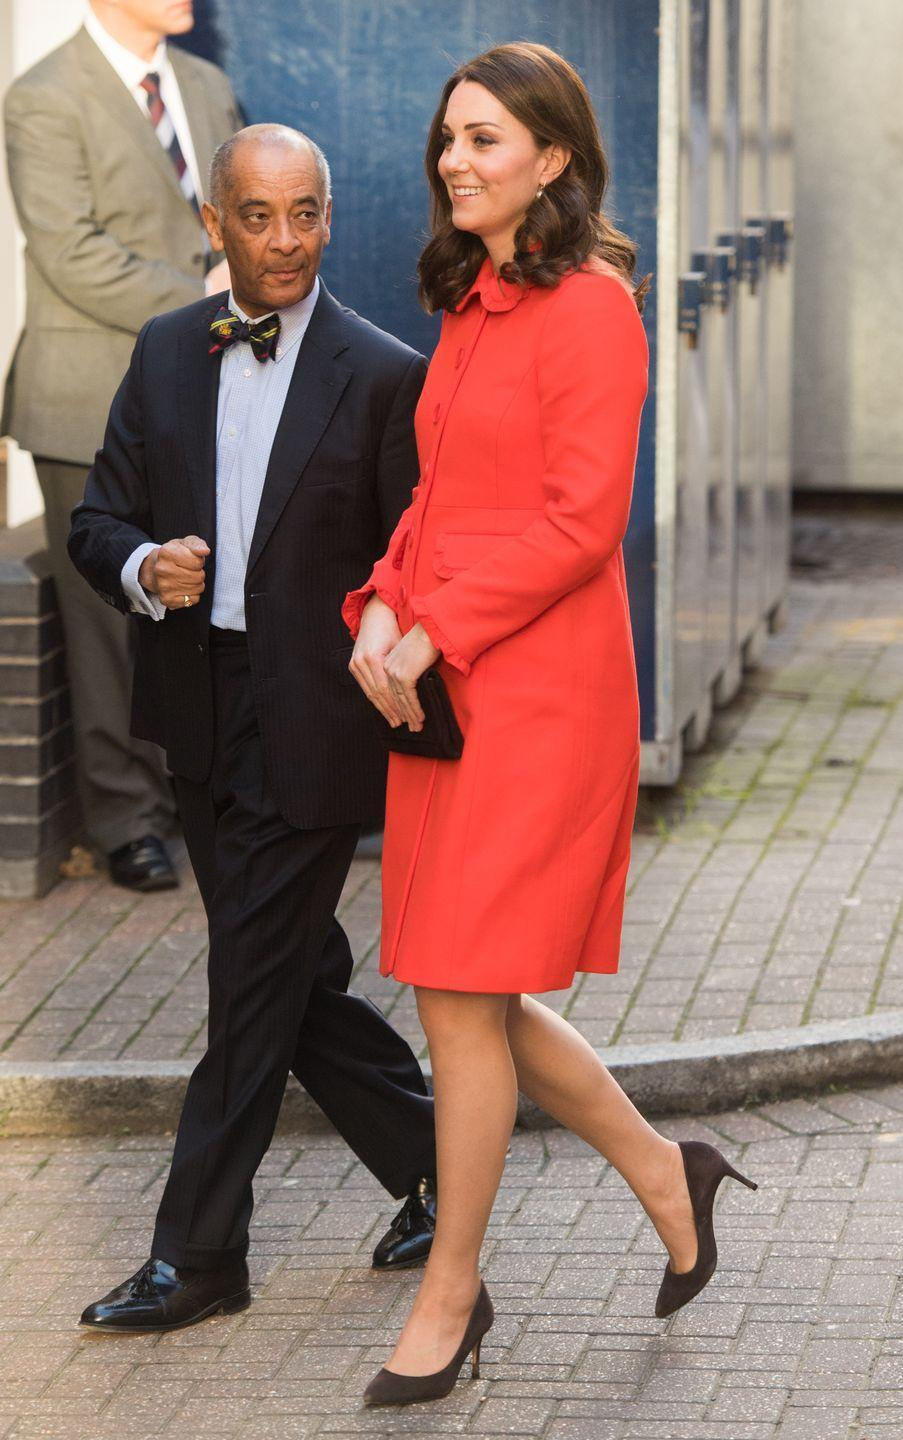 """<p>The Duchess wore a bright coat by Boden for a visit to Great Ormond Street Hospital. <a href=""""https://www.townandcountrymag.com/society/tradition/a15392557/kate-middleton-not-wearing-engagement-ring/"""" rel=""""nofollow noopener"""" target=""""_blank"""" data-ylk=""""slk:Noticeably missing was Kate's signature engagement ring"""" class=""""link rapid-noclick-resp"""">Noticeably missing was Kate's signature engagement ring</a>, which she removed before her visit due to hygiene requirements at the hospital. </p>"""